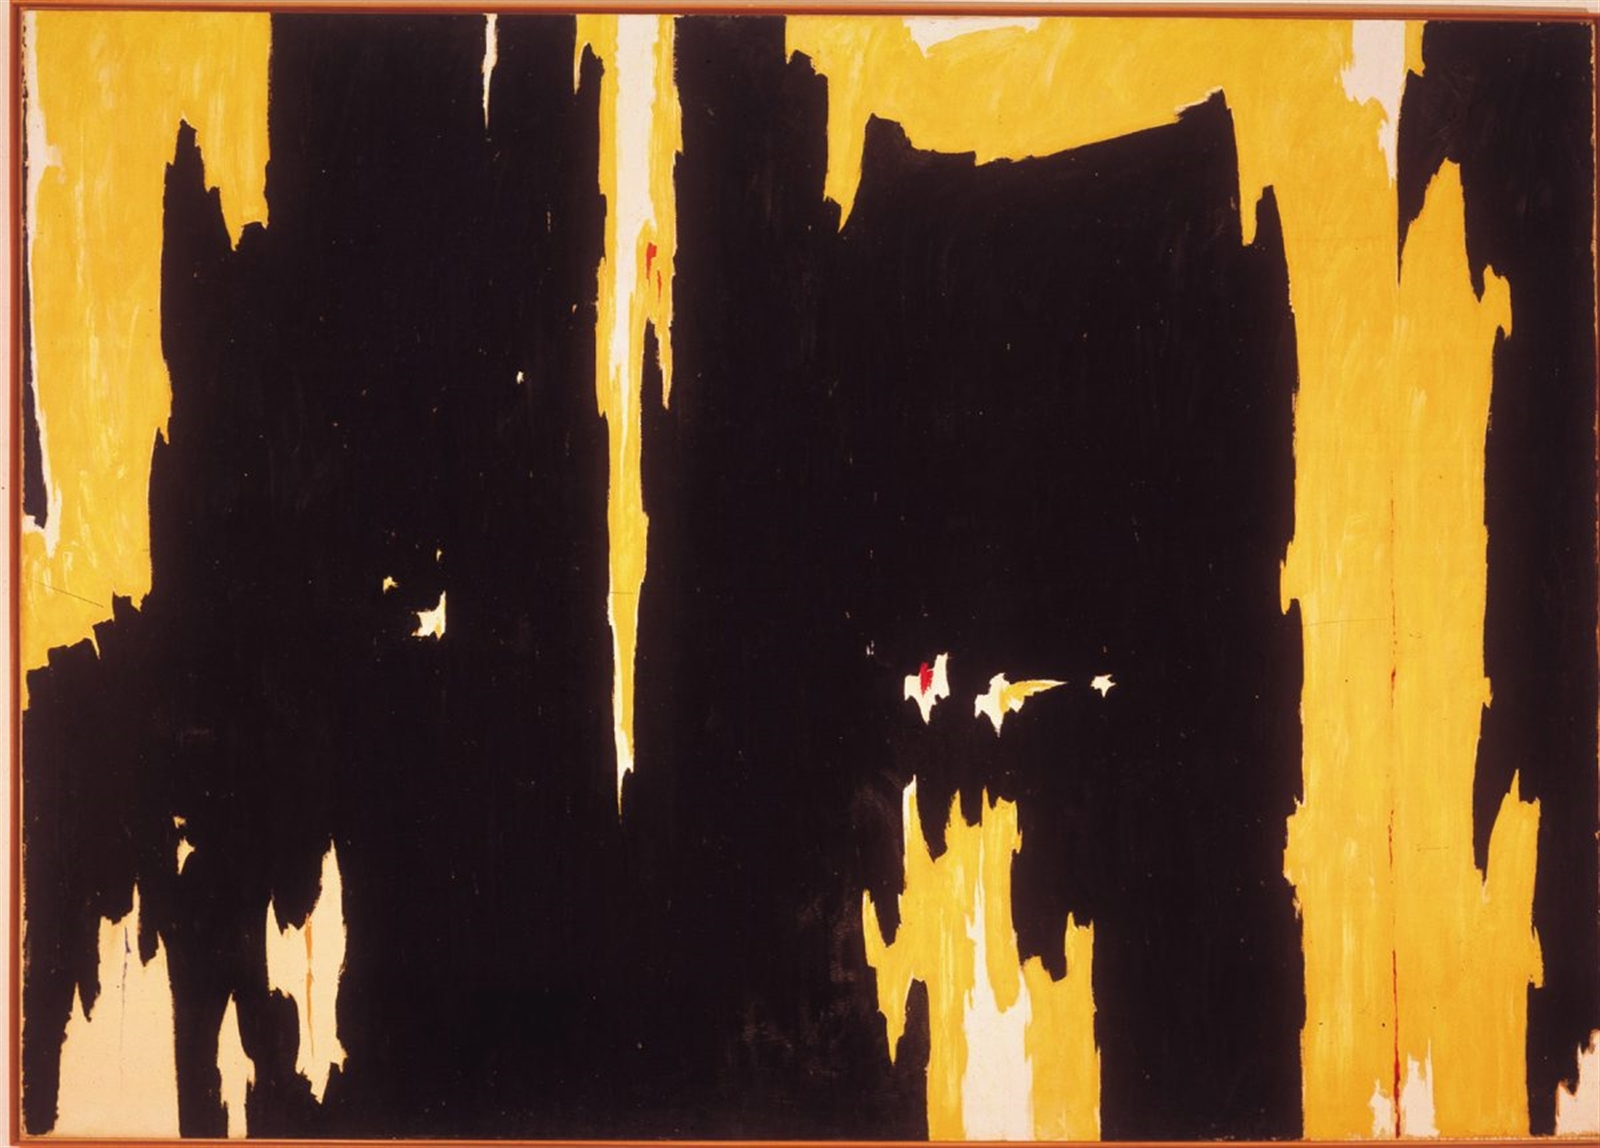 1957-D, No. / Clyfford Still / 1957. Jagged yellow stalactites and stalagmites jut into the center of this mammoth piece, one of the most famous by the fiercely independent artist Clyfford Still. Though itu2019s easy to compare the piece to the similarly jagged and awe-inspiring landscape of the American Southwest, the forms of the painting actually may have their basis in the human body. The piece is nothing less than Stillu2019s attempt to create art that captures something essential about the human soul, something you can decide for yourself if this piece accomplishes. No matter what it says to you about your species, its rough beauty is tough to deny.